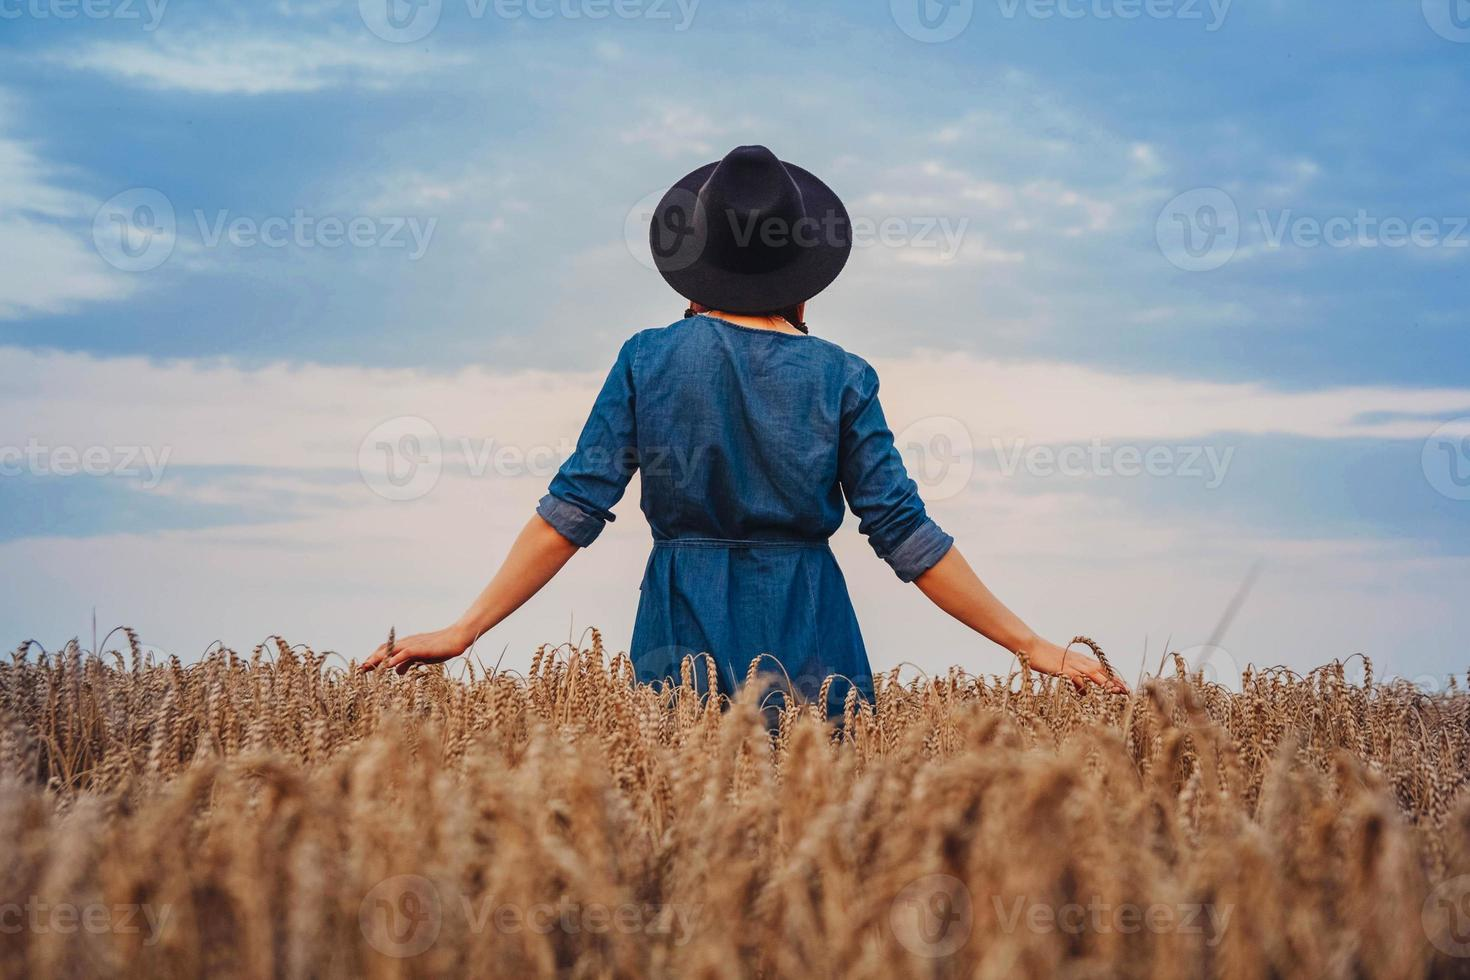 woman in a dress and hat walking through wheat field photo